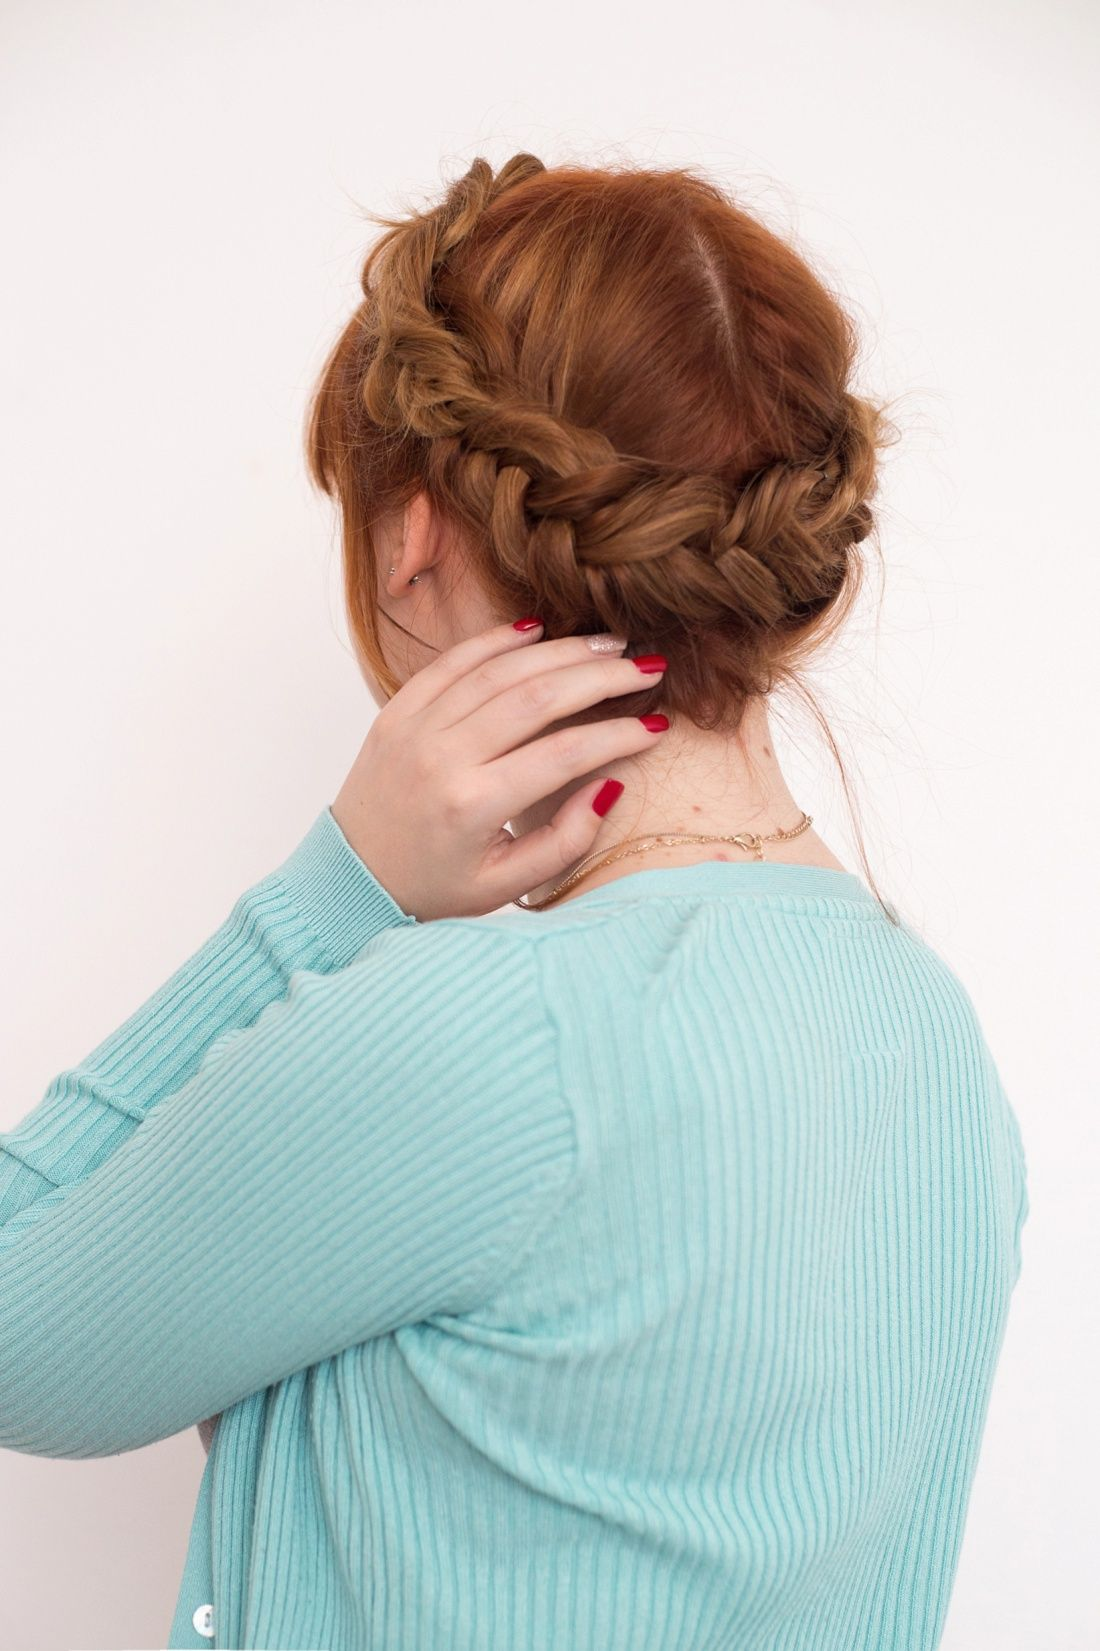 Bookmark This Star Wars Inspired Messy Fishtail Crown Braid Princess